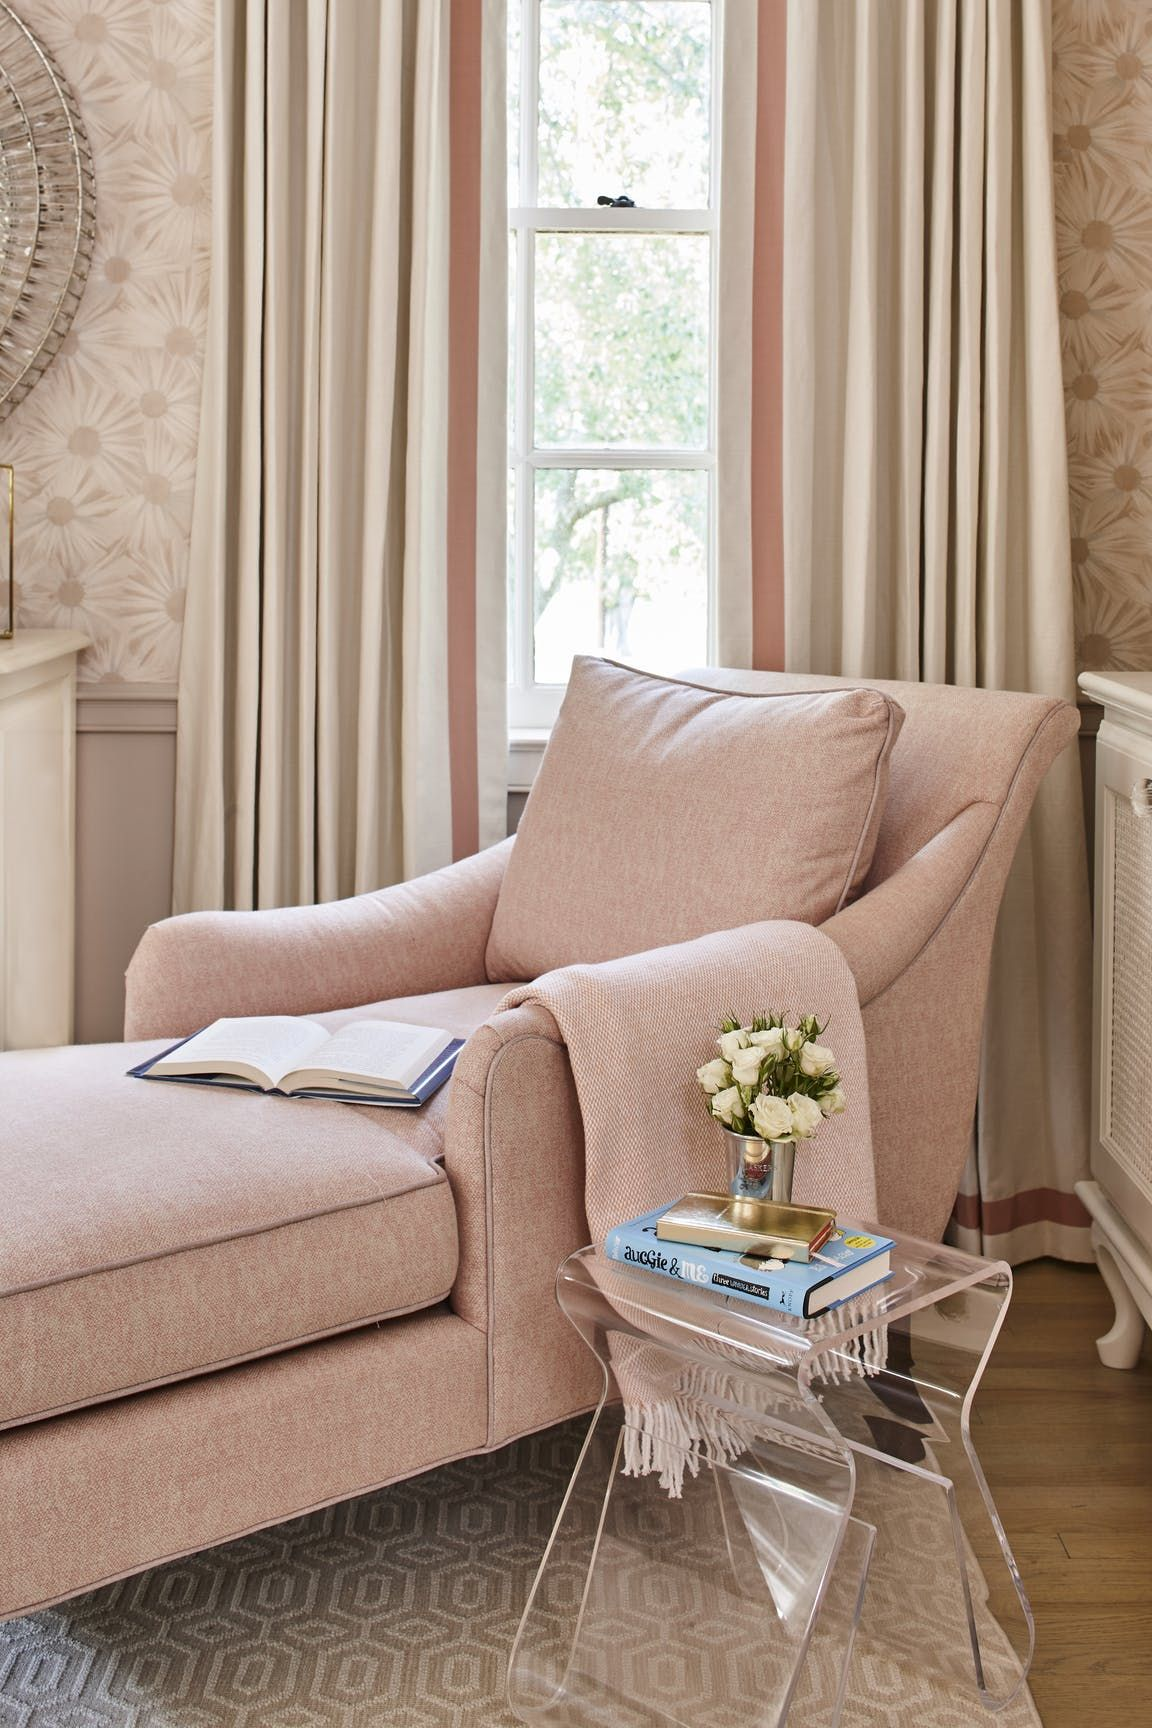 Girl S Room With Blush Chaise Lounge Chair And Soft Blush Wall Covering By Ashley Gilbreath Interior Des Lounge Chair Bedroom Chaise Lounge Chair Chaise Lounge